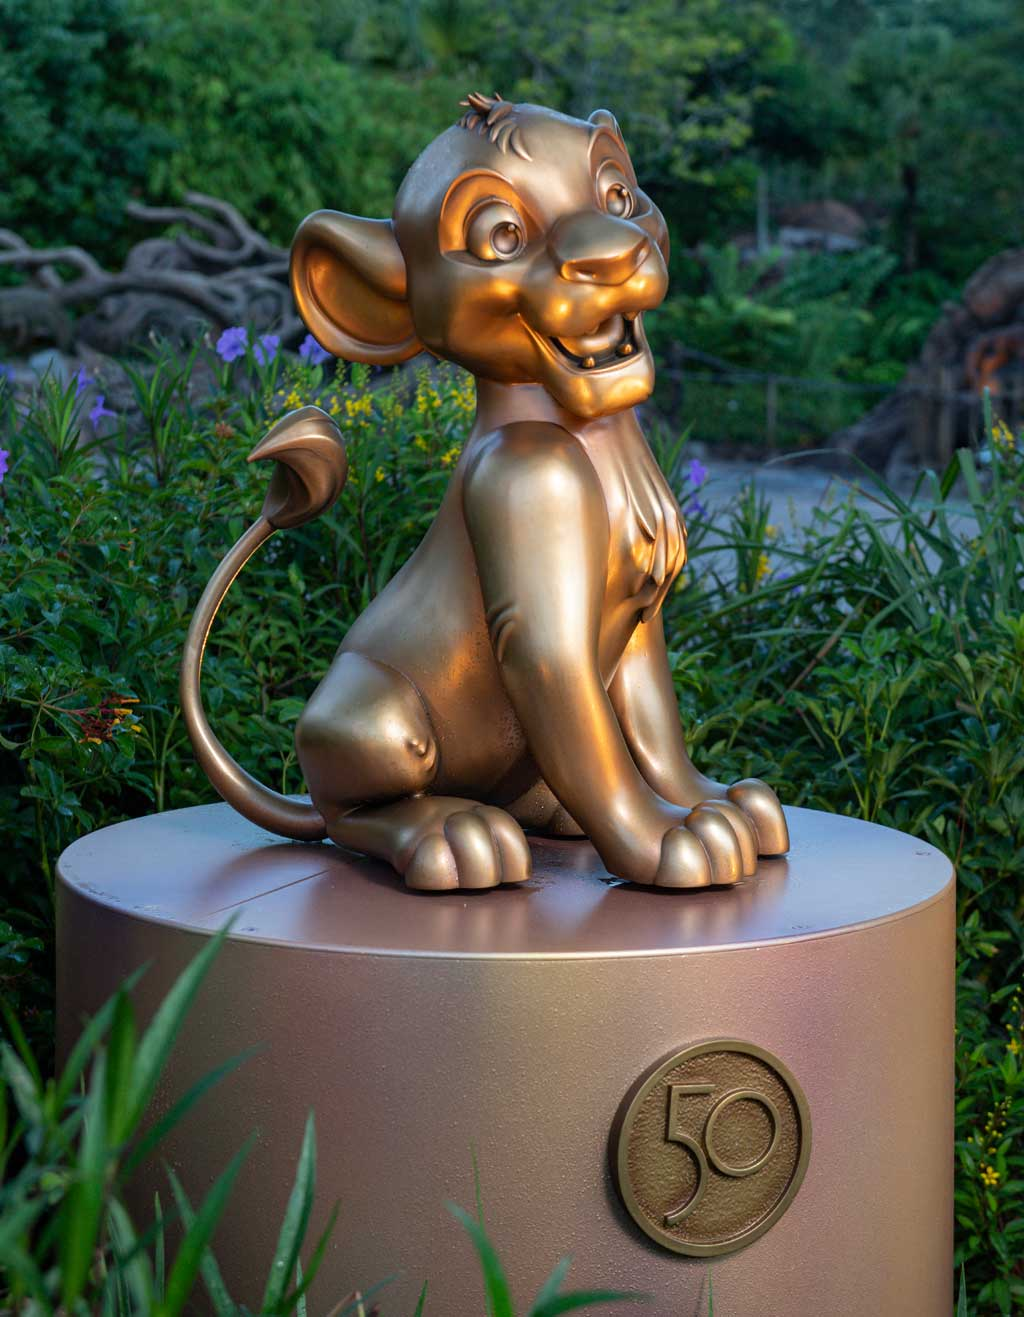 """Simba at Disney's Animal Kingdom Theme Park is one of the """"Disney Fab 50 Character Collection"""" appearing in all four Walt Disney World Resort theme parks in Lake Buena Vista, Fla., as part of """"The World's Most Magical Celebration,"""" beginning Oct. 1, 2021, in honor of the resort's 50th anniversary. (David Roark, photographer)"""